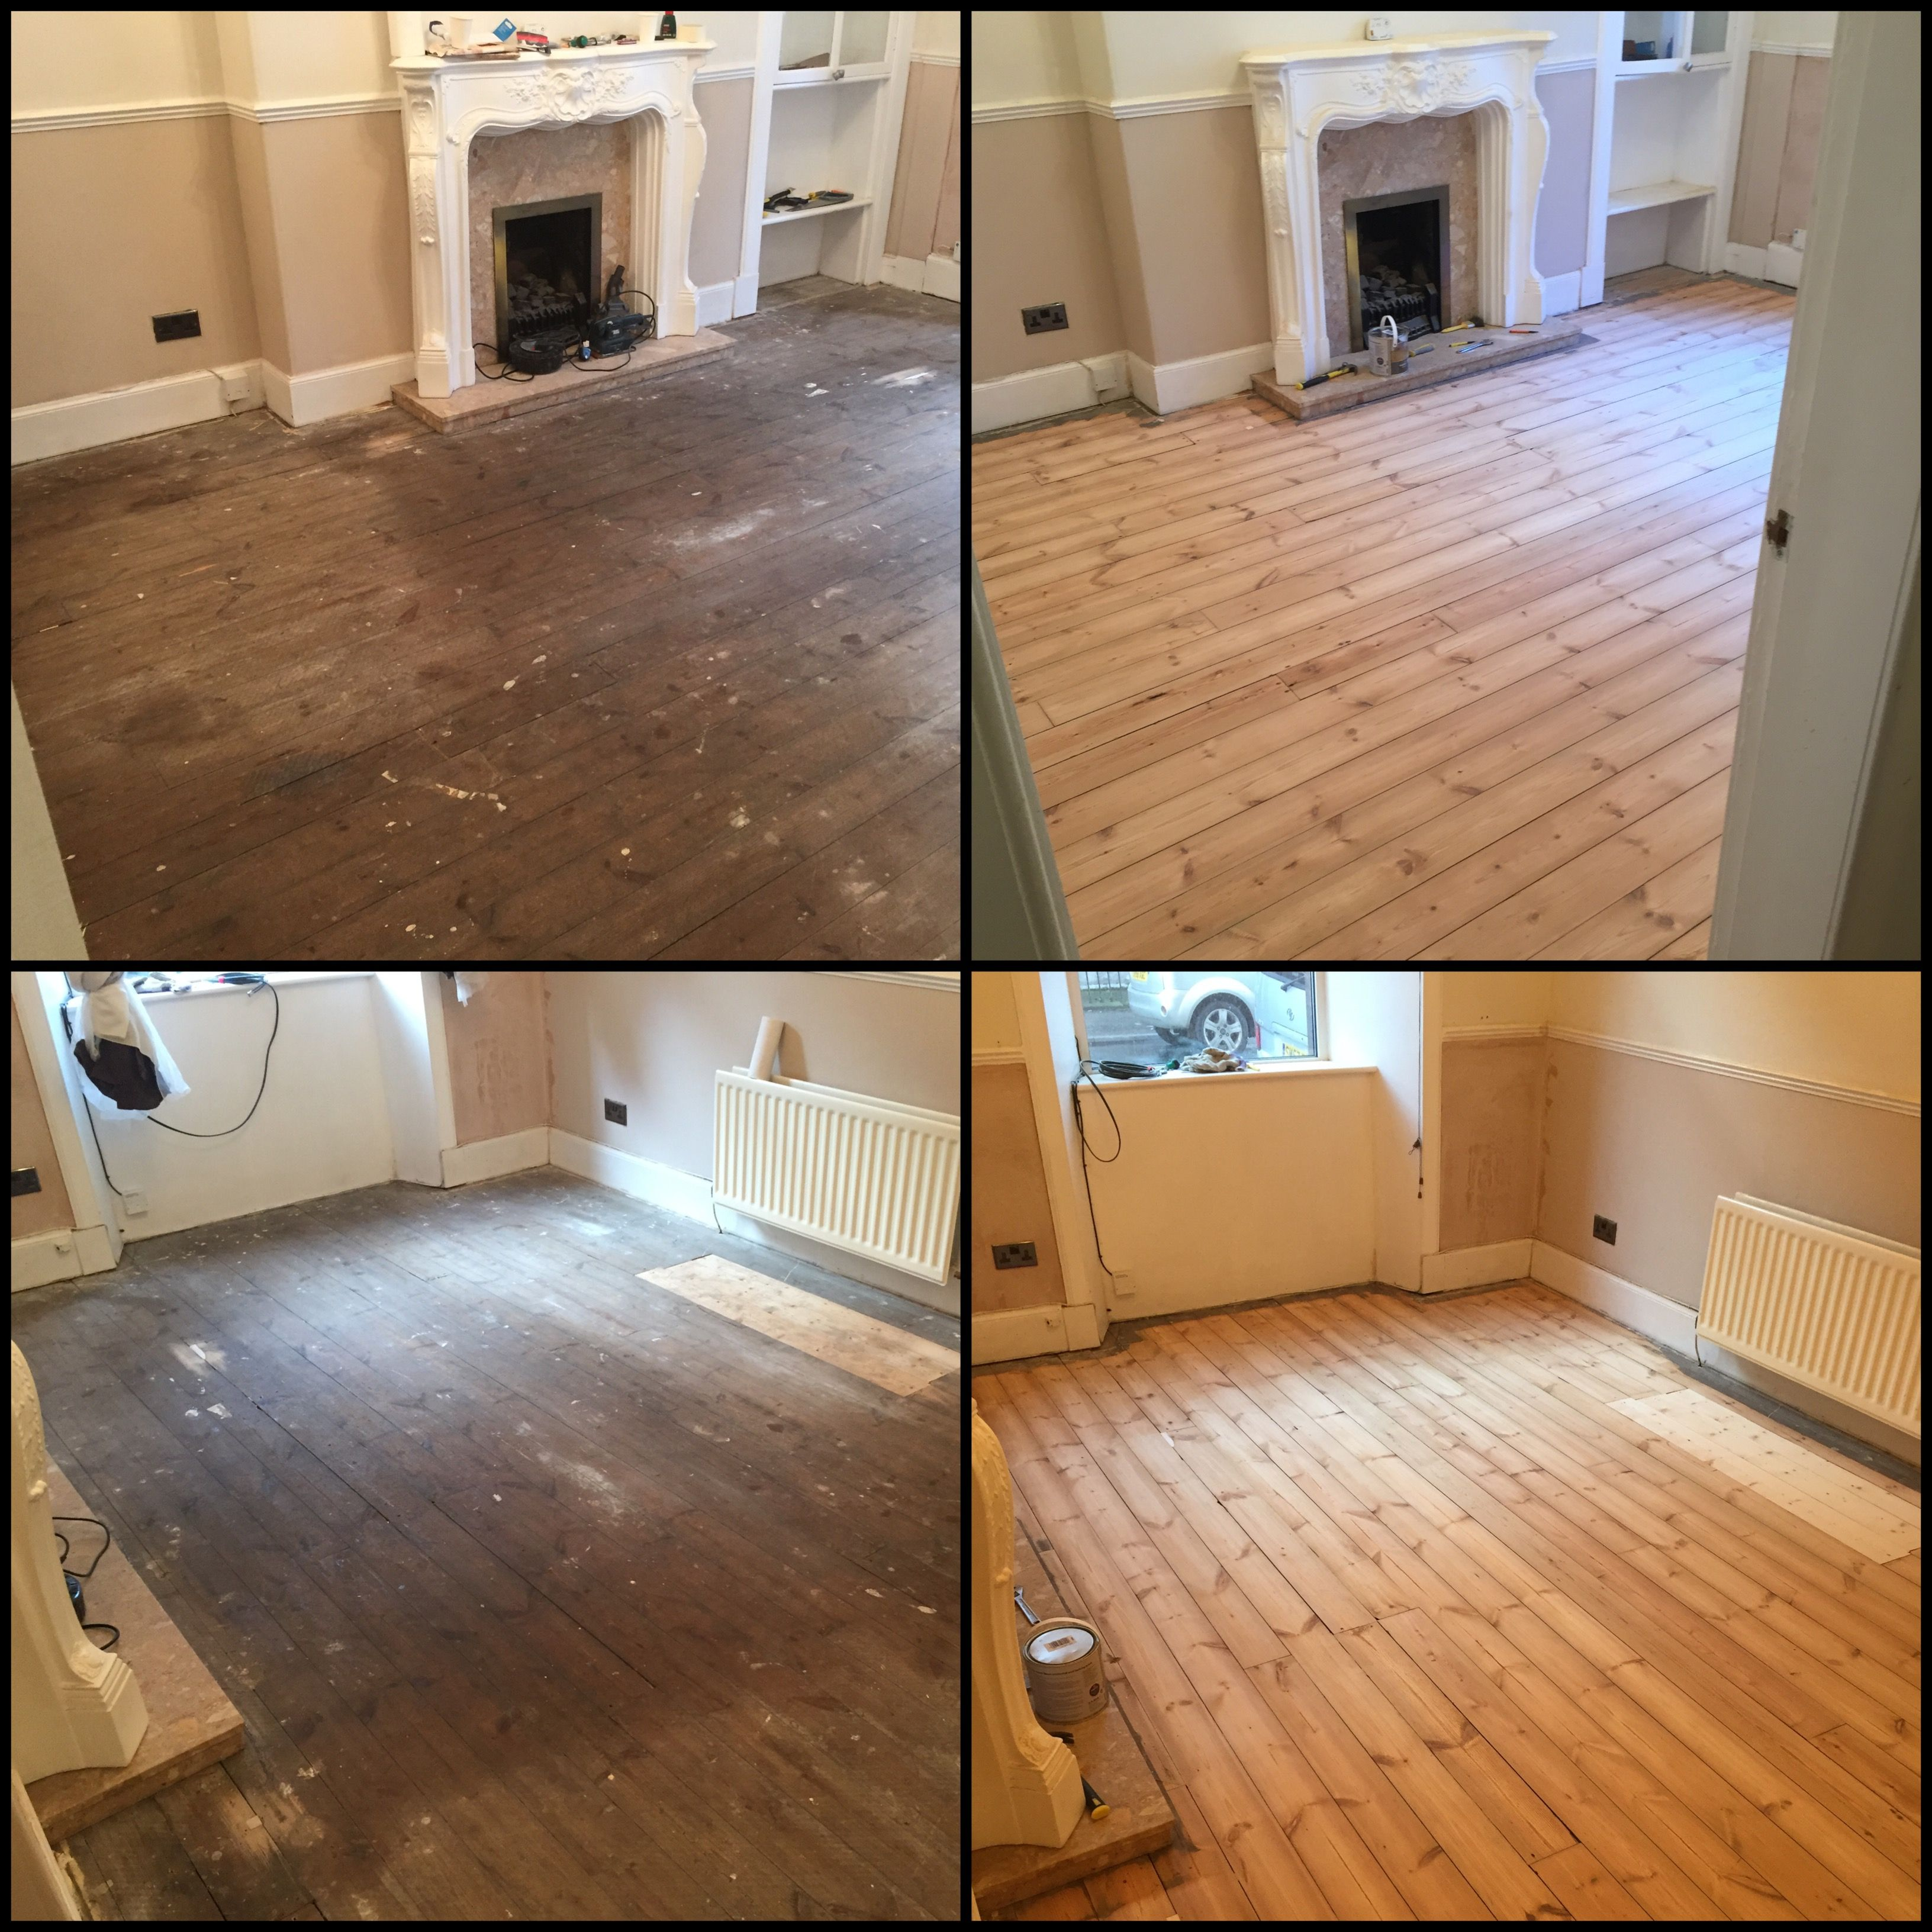 Should have just soaked the floor in wood, would have been quicker - Imgur